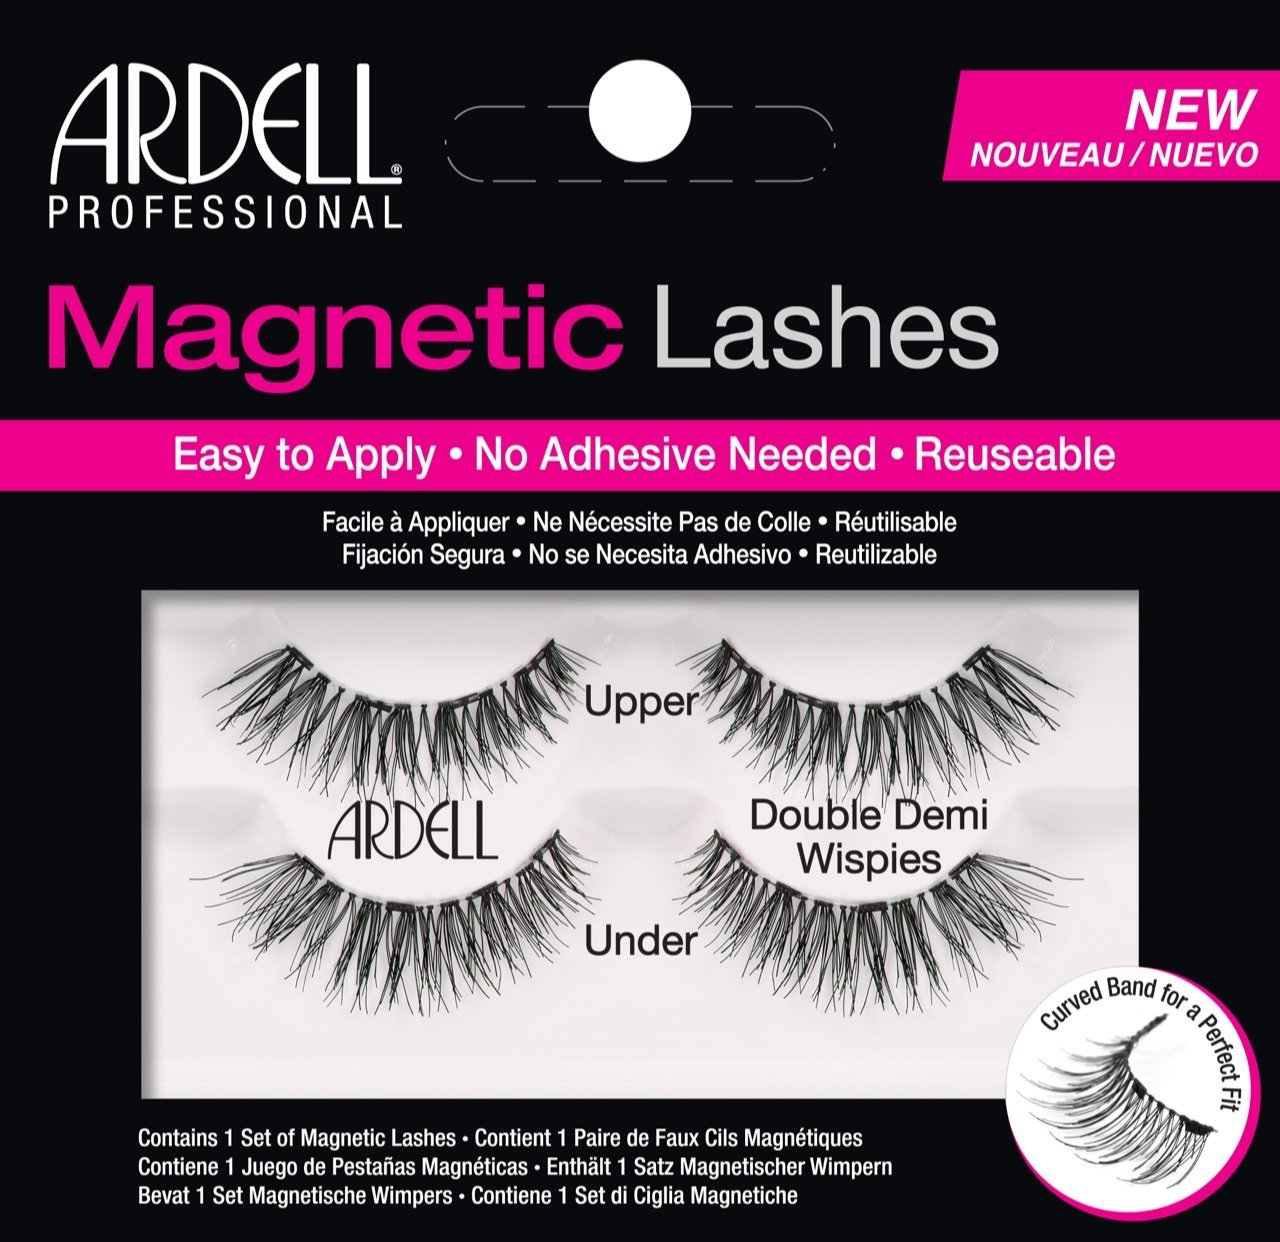 16a88e7e637 Ardell Ardell Magnetic Lashes Double Demi Wispies,: Amazon.com.au: Beauty